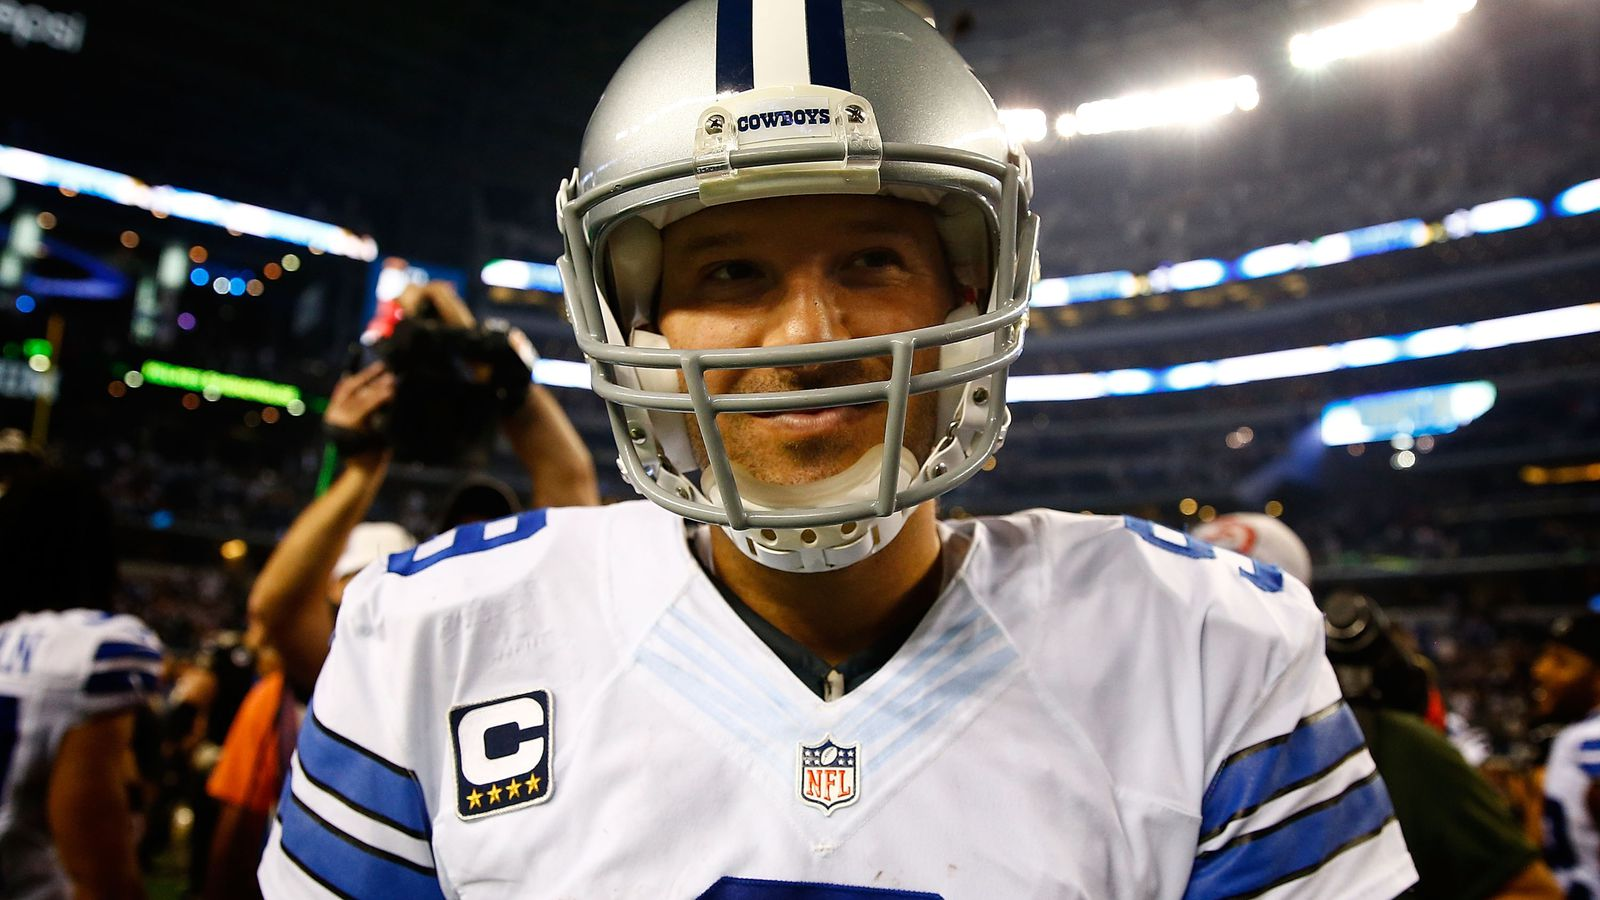 The Mmbm Week 4 The Dallas Cowboys Will Win The Super